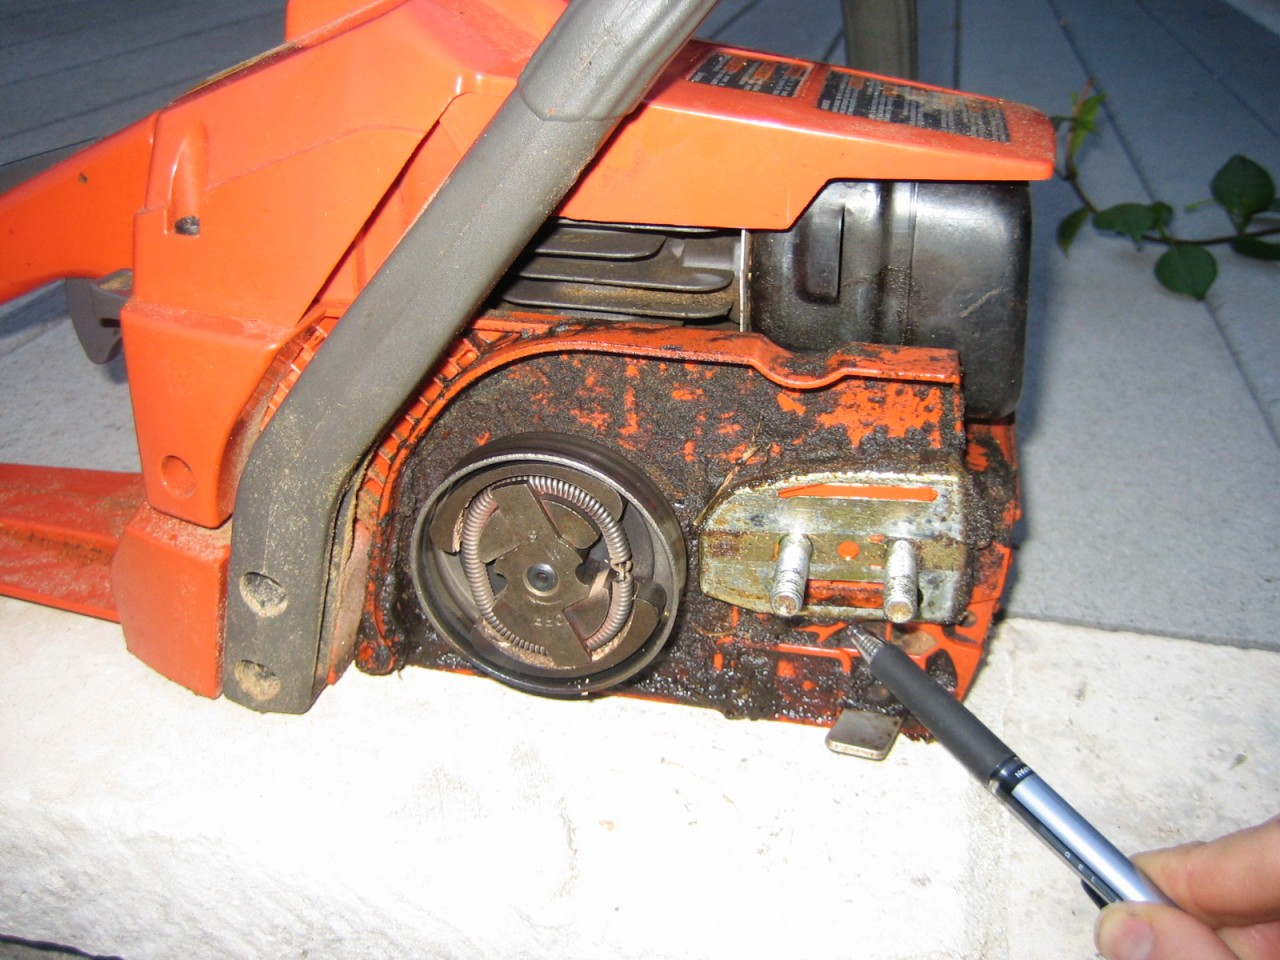 Husqvarna 141 chainsaw no oil on barchain chainsaws forum husqvarna 141 chainsaw no oil on barchain chainsaws forum answerarmy greentooth Choice Image